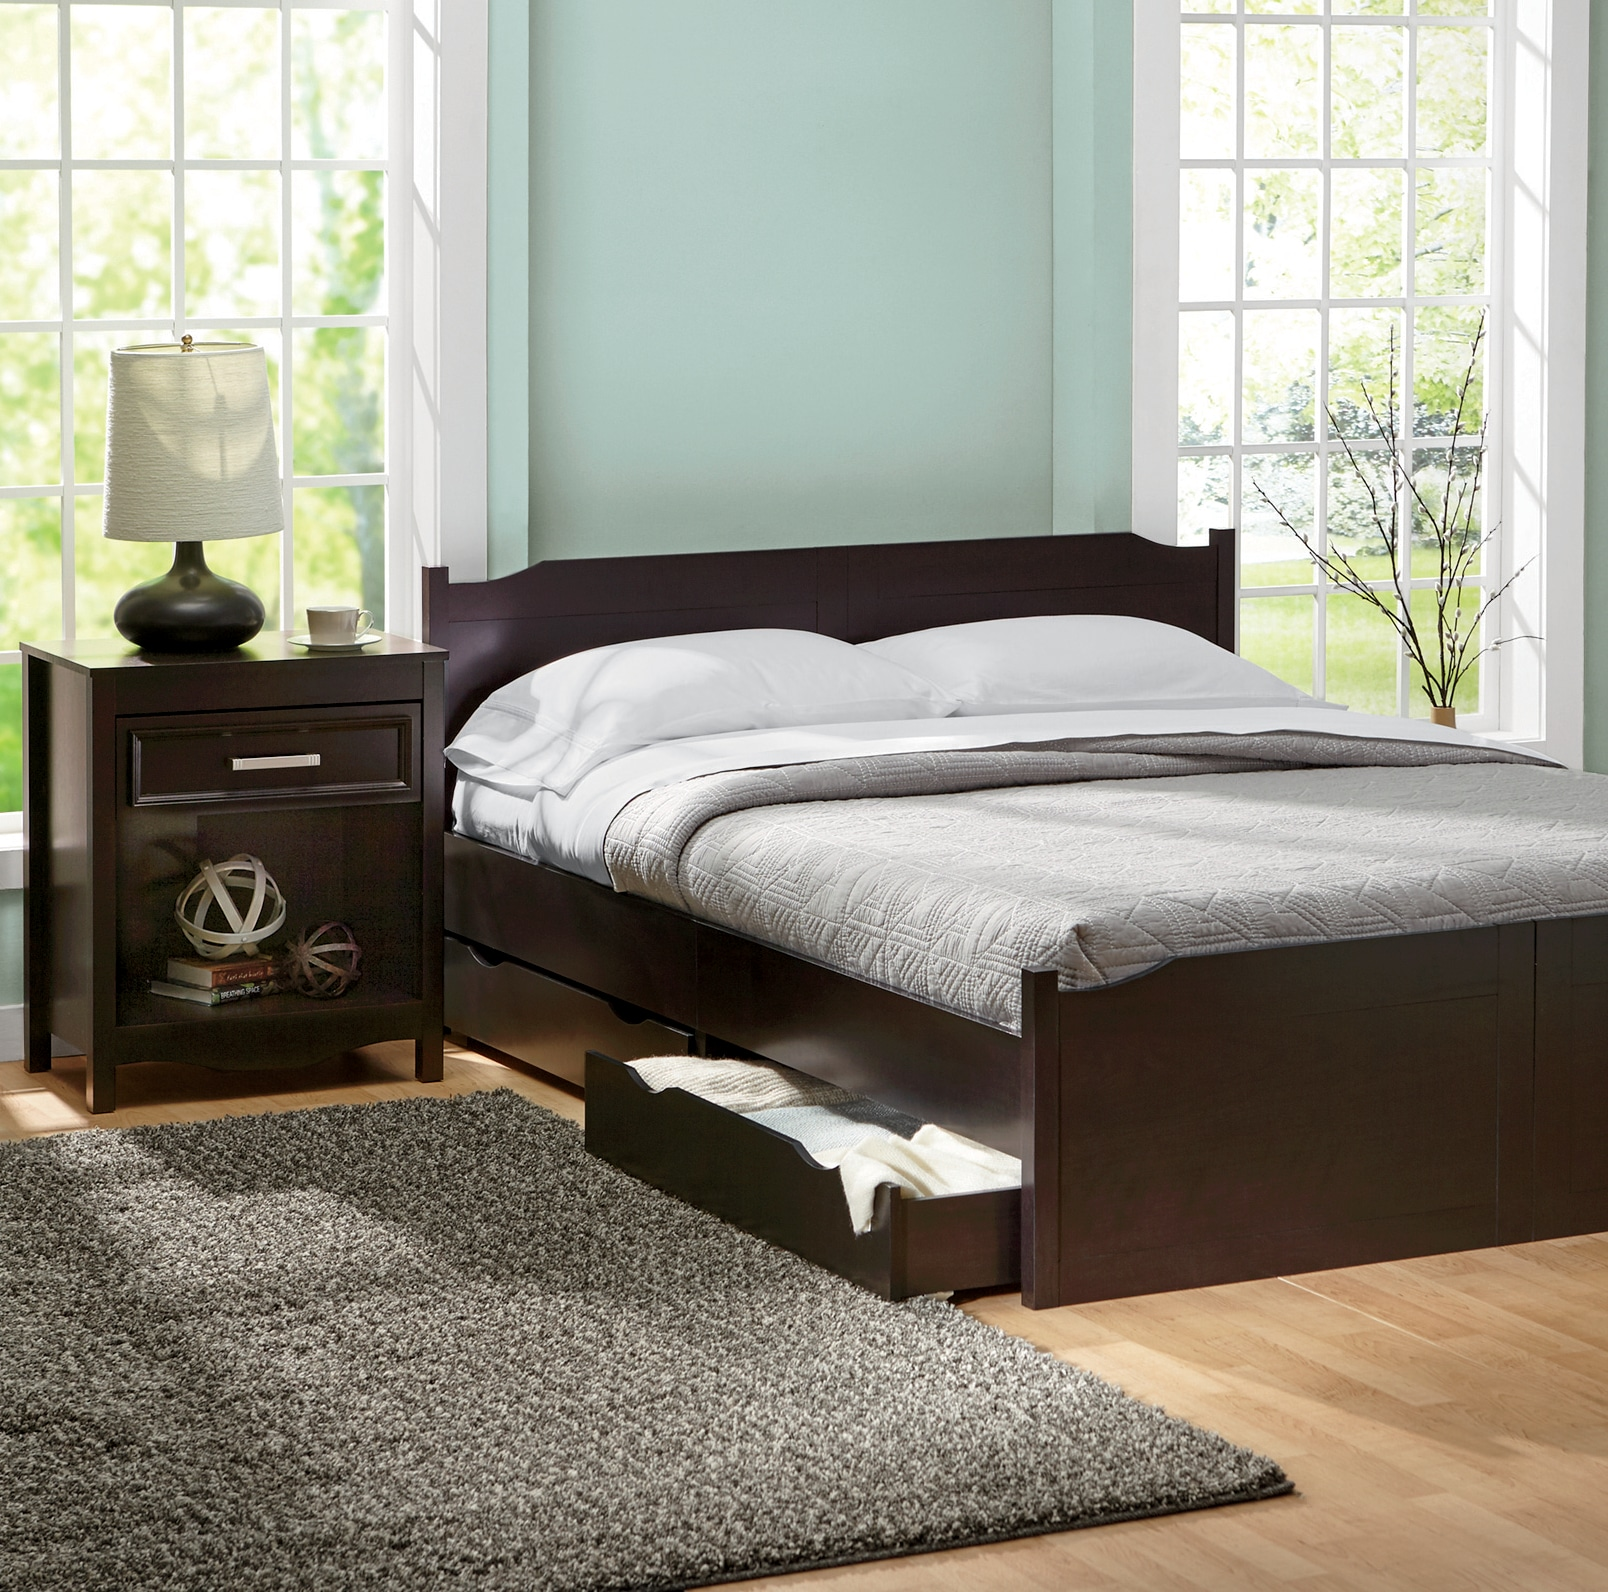 Beds  Headboards   Frames   Folding and Storage Beds   Seventh Avenue Candice Bedroom Furniture Collection